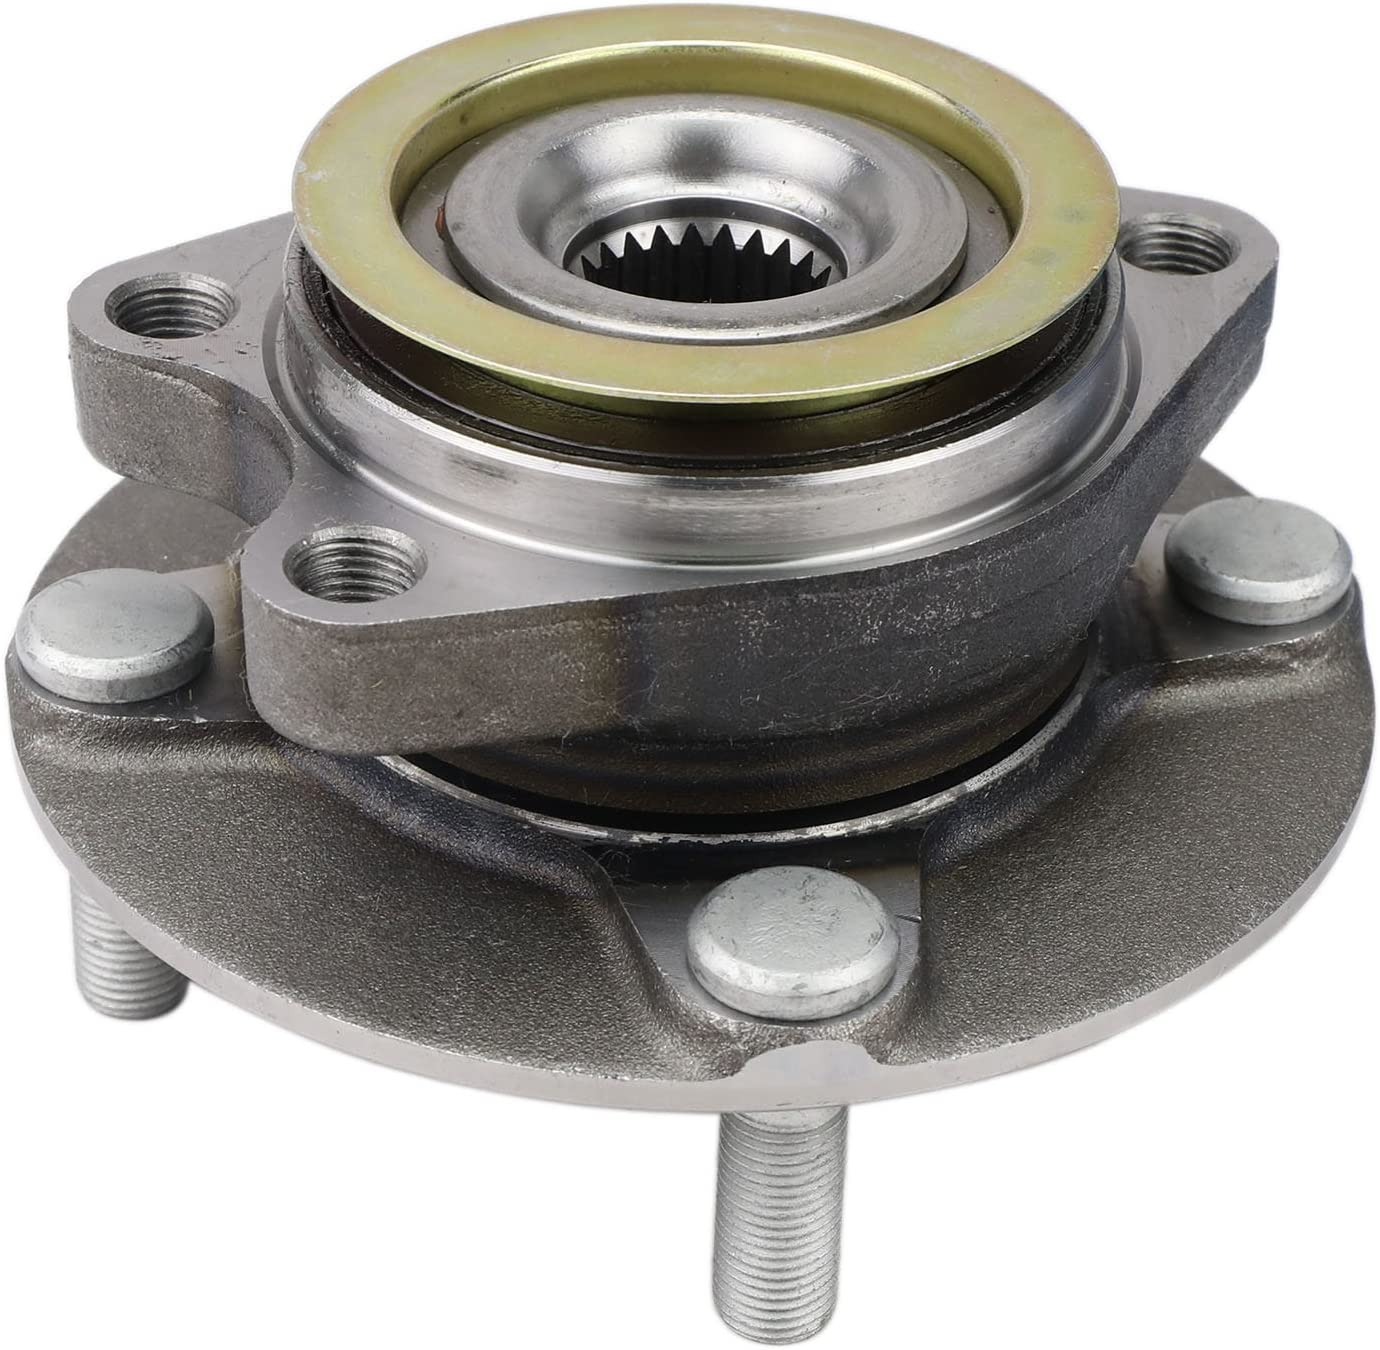 2-Pack Subaru Saab 9-2X, See Description for Details Forester QJZ Impreza Outback Legacy 517008 Front Driver and Passenger Side Wheel Hub Bearing Assembly Compatible with Nissan Micra Baja